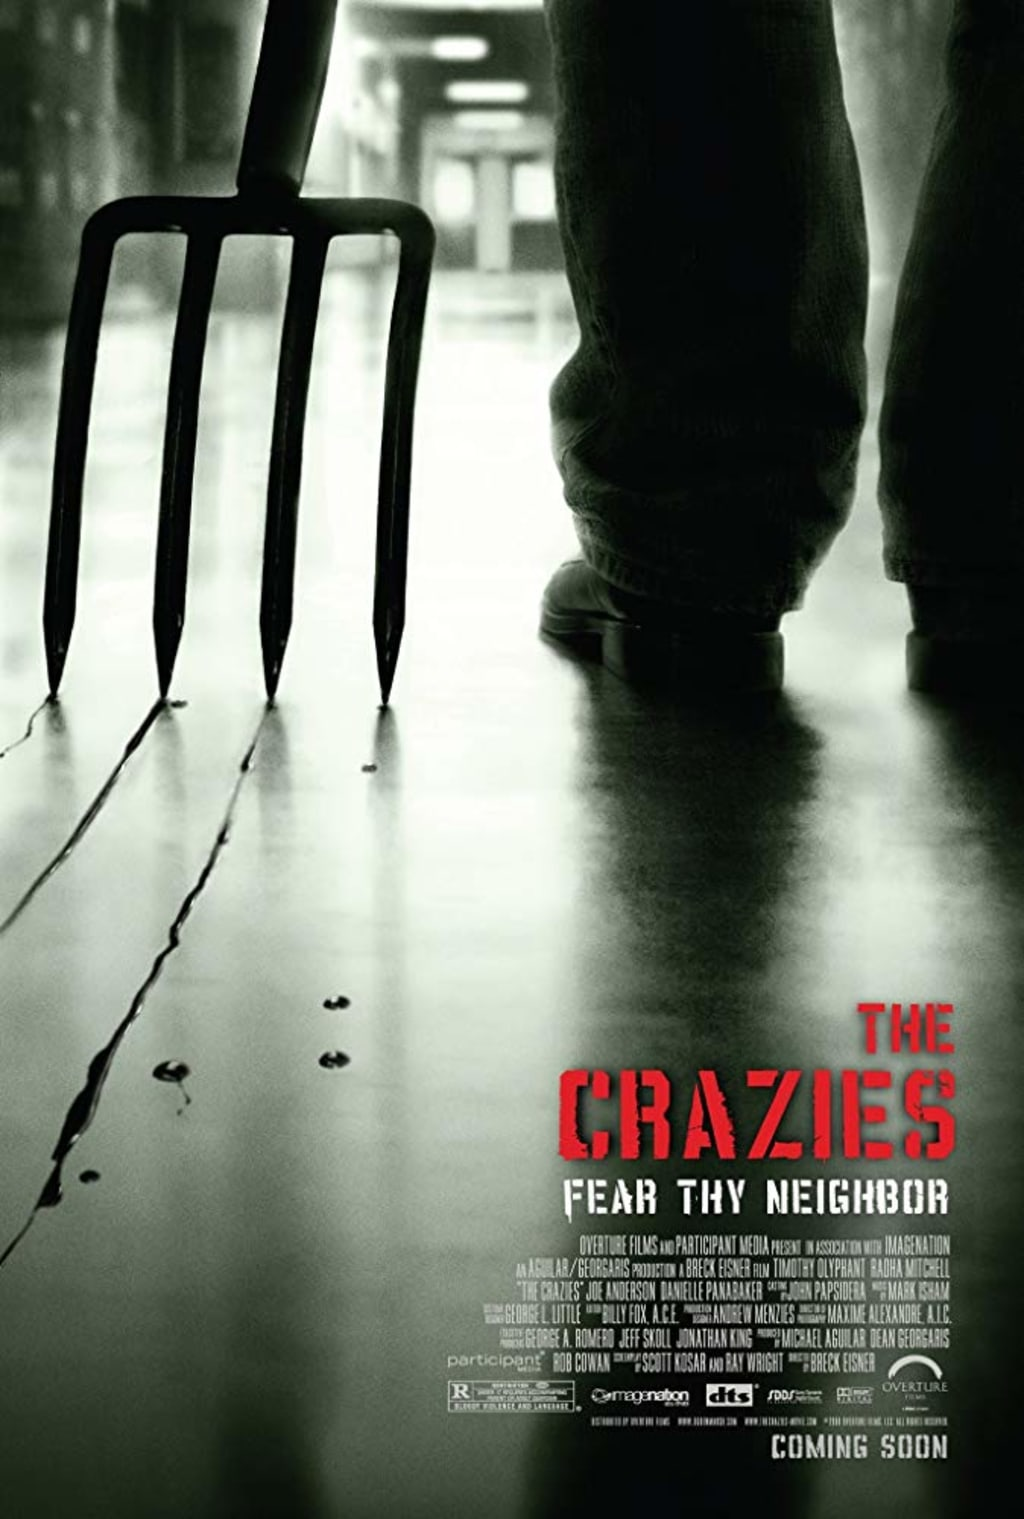 Reed Alexander's Horror Review of 'The Crazies' (2010)